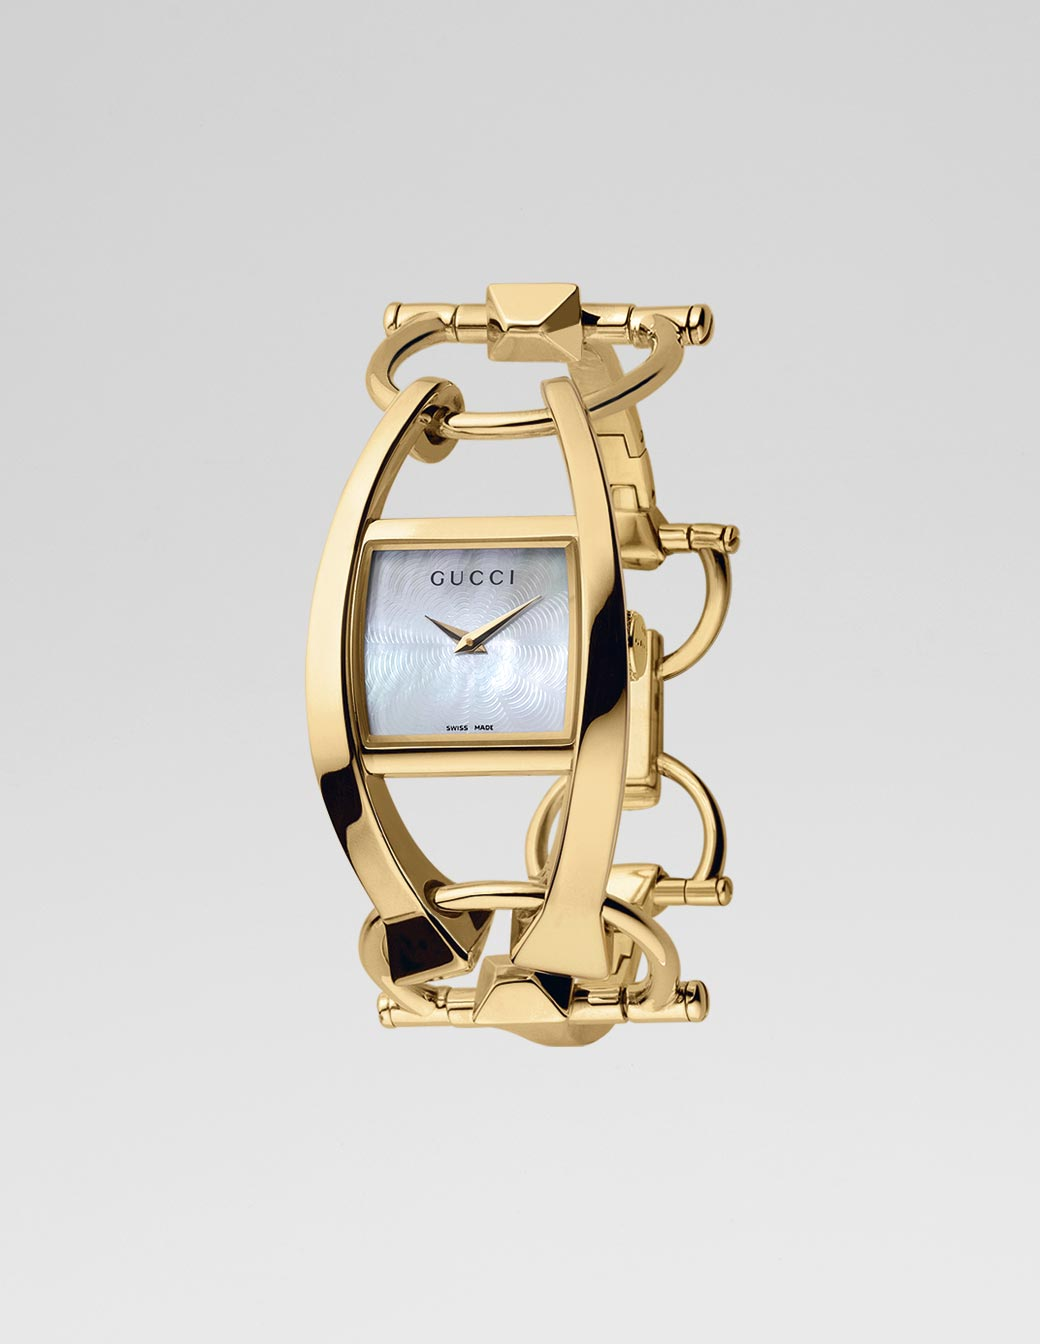 burberry watches for women outlet  gucci outlet